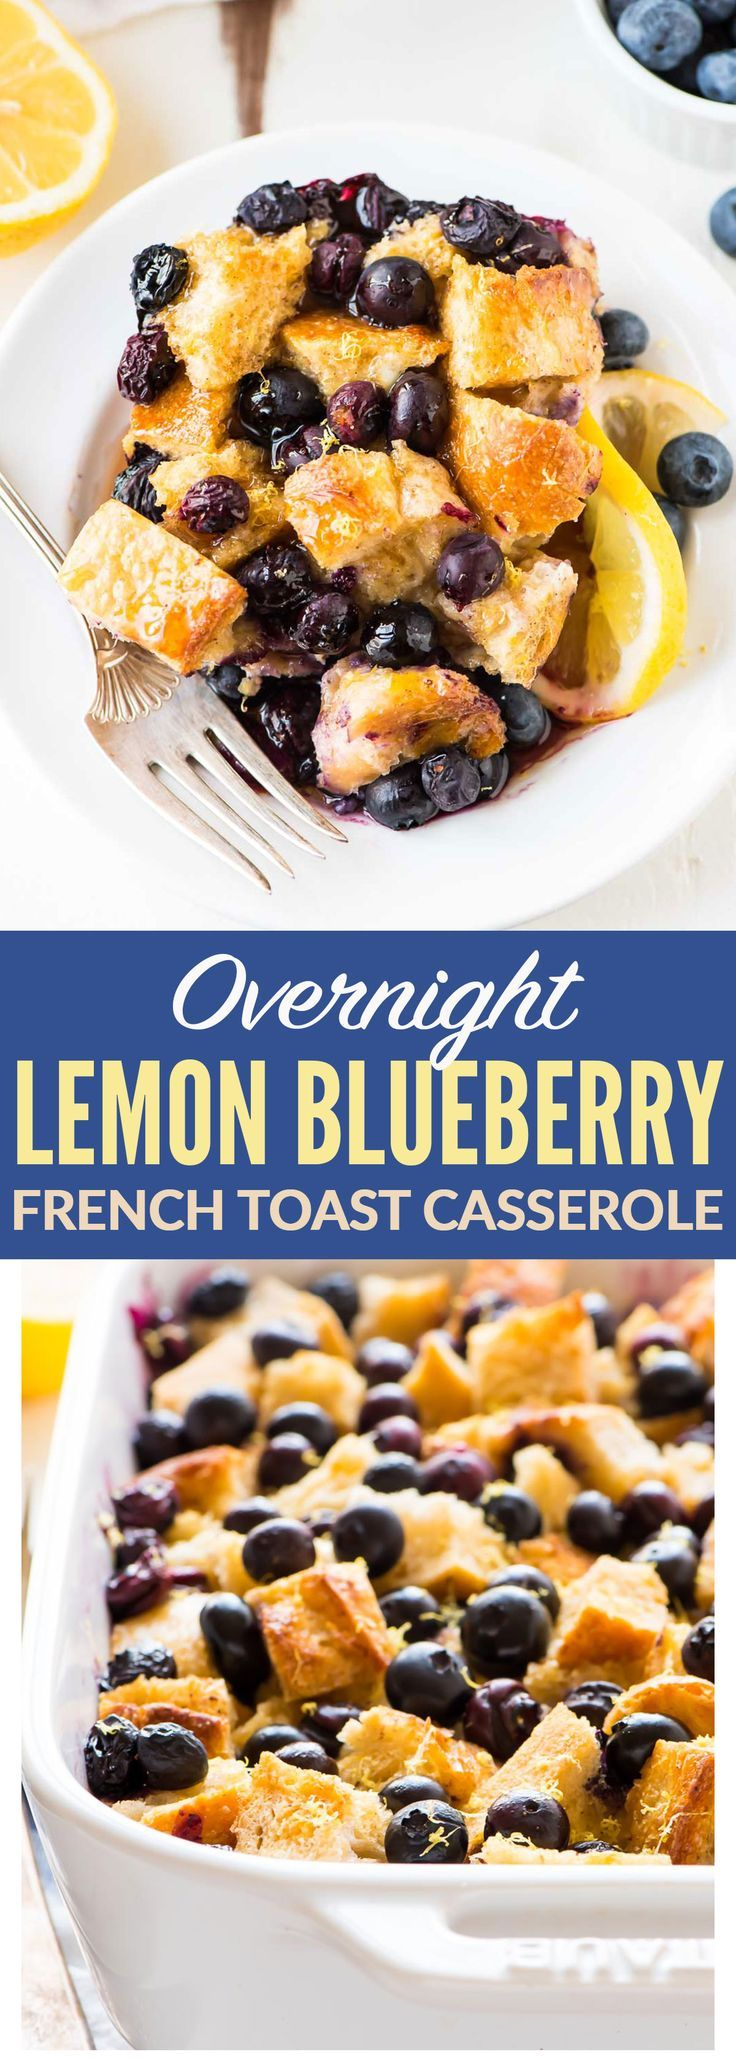 BEST Overnight Lemon Blueberry French Toast Casserole. Easy, make-ahead brunch recipe that is perfect for a crowd! Soft, fluffy, and every bite is BURSTING with blueberries. Recipe at wellplated.com | @wellplated